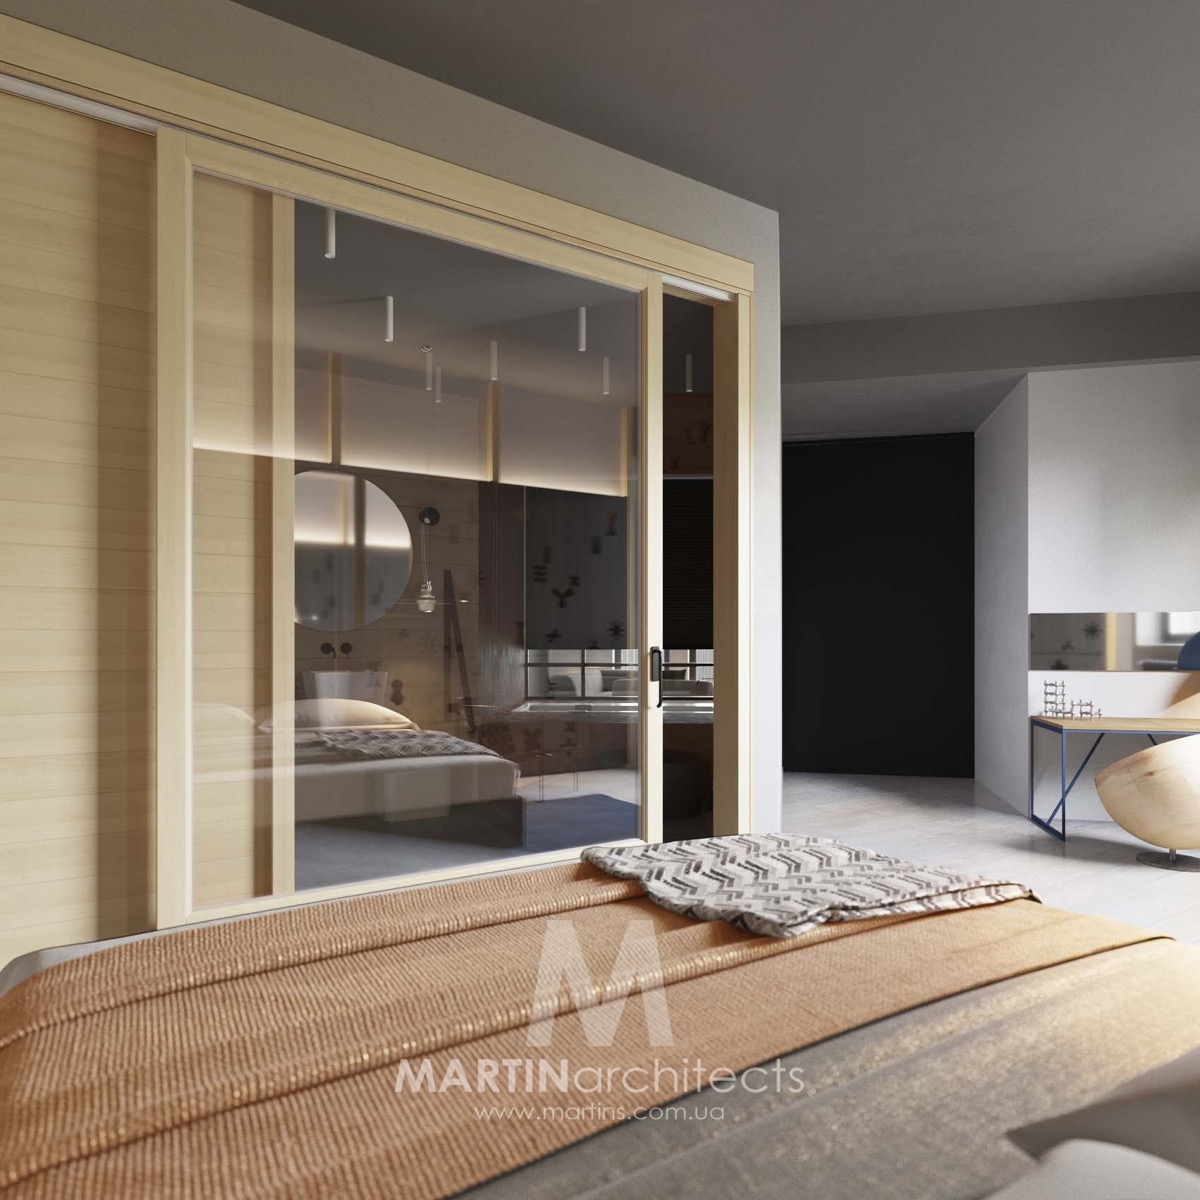 Simple Bedroom Design - A sleek apartment the divides rooms creatively